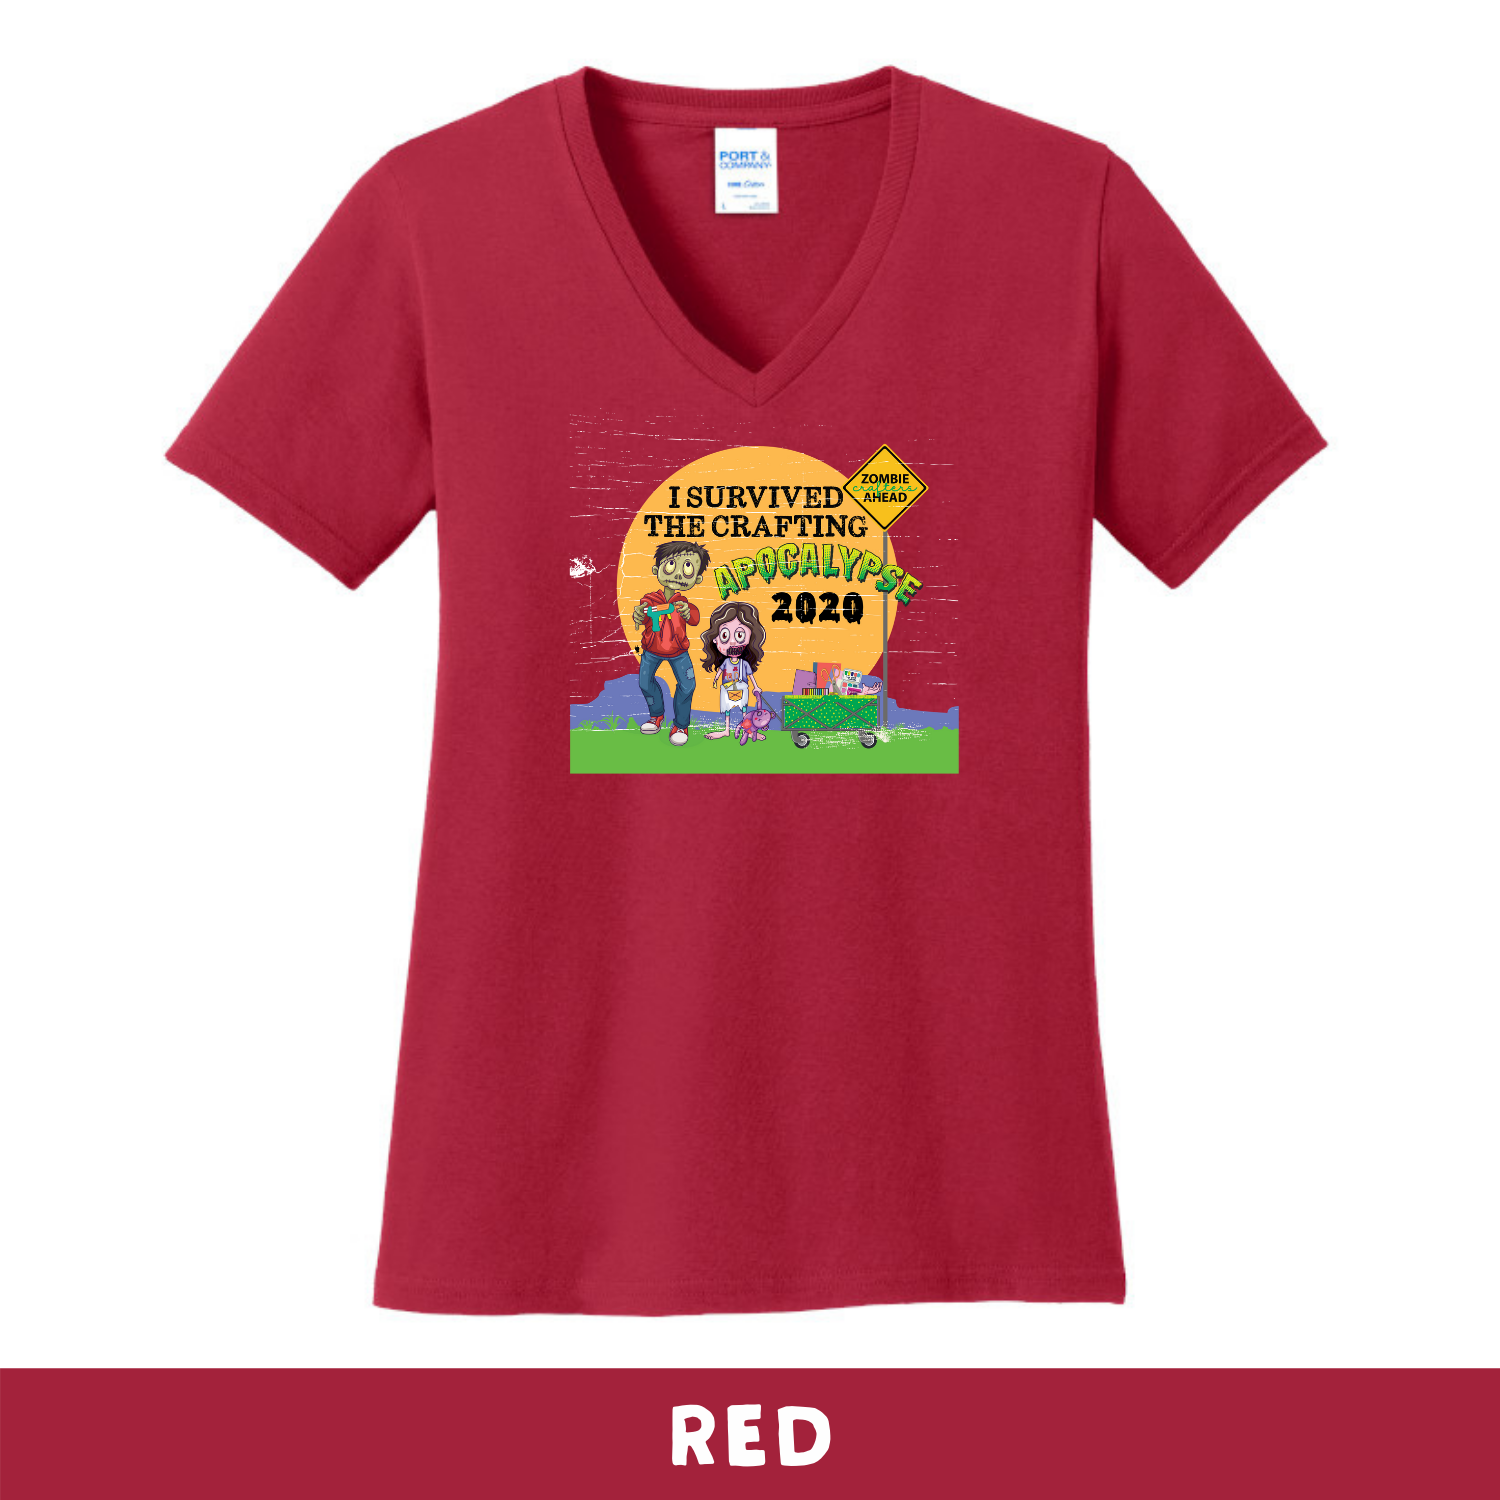 Red - Woman's Cut V-Neck - I Survived The 2020 Crafting Apocalypse